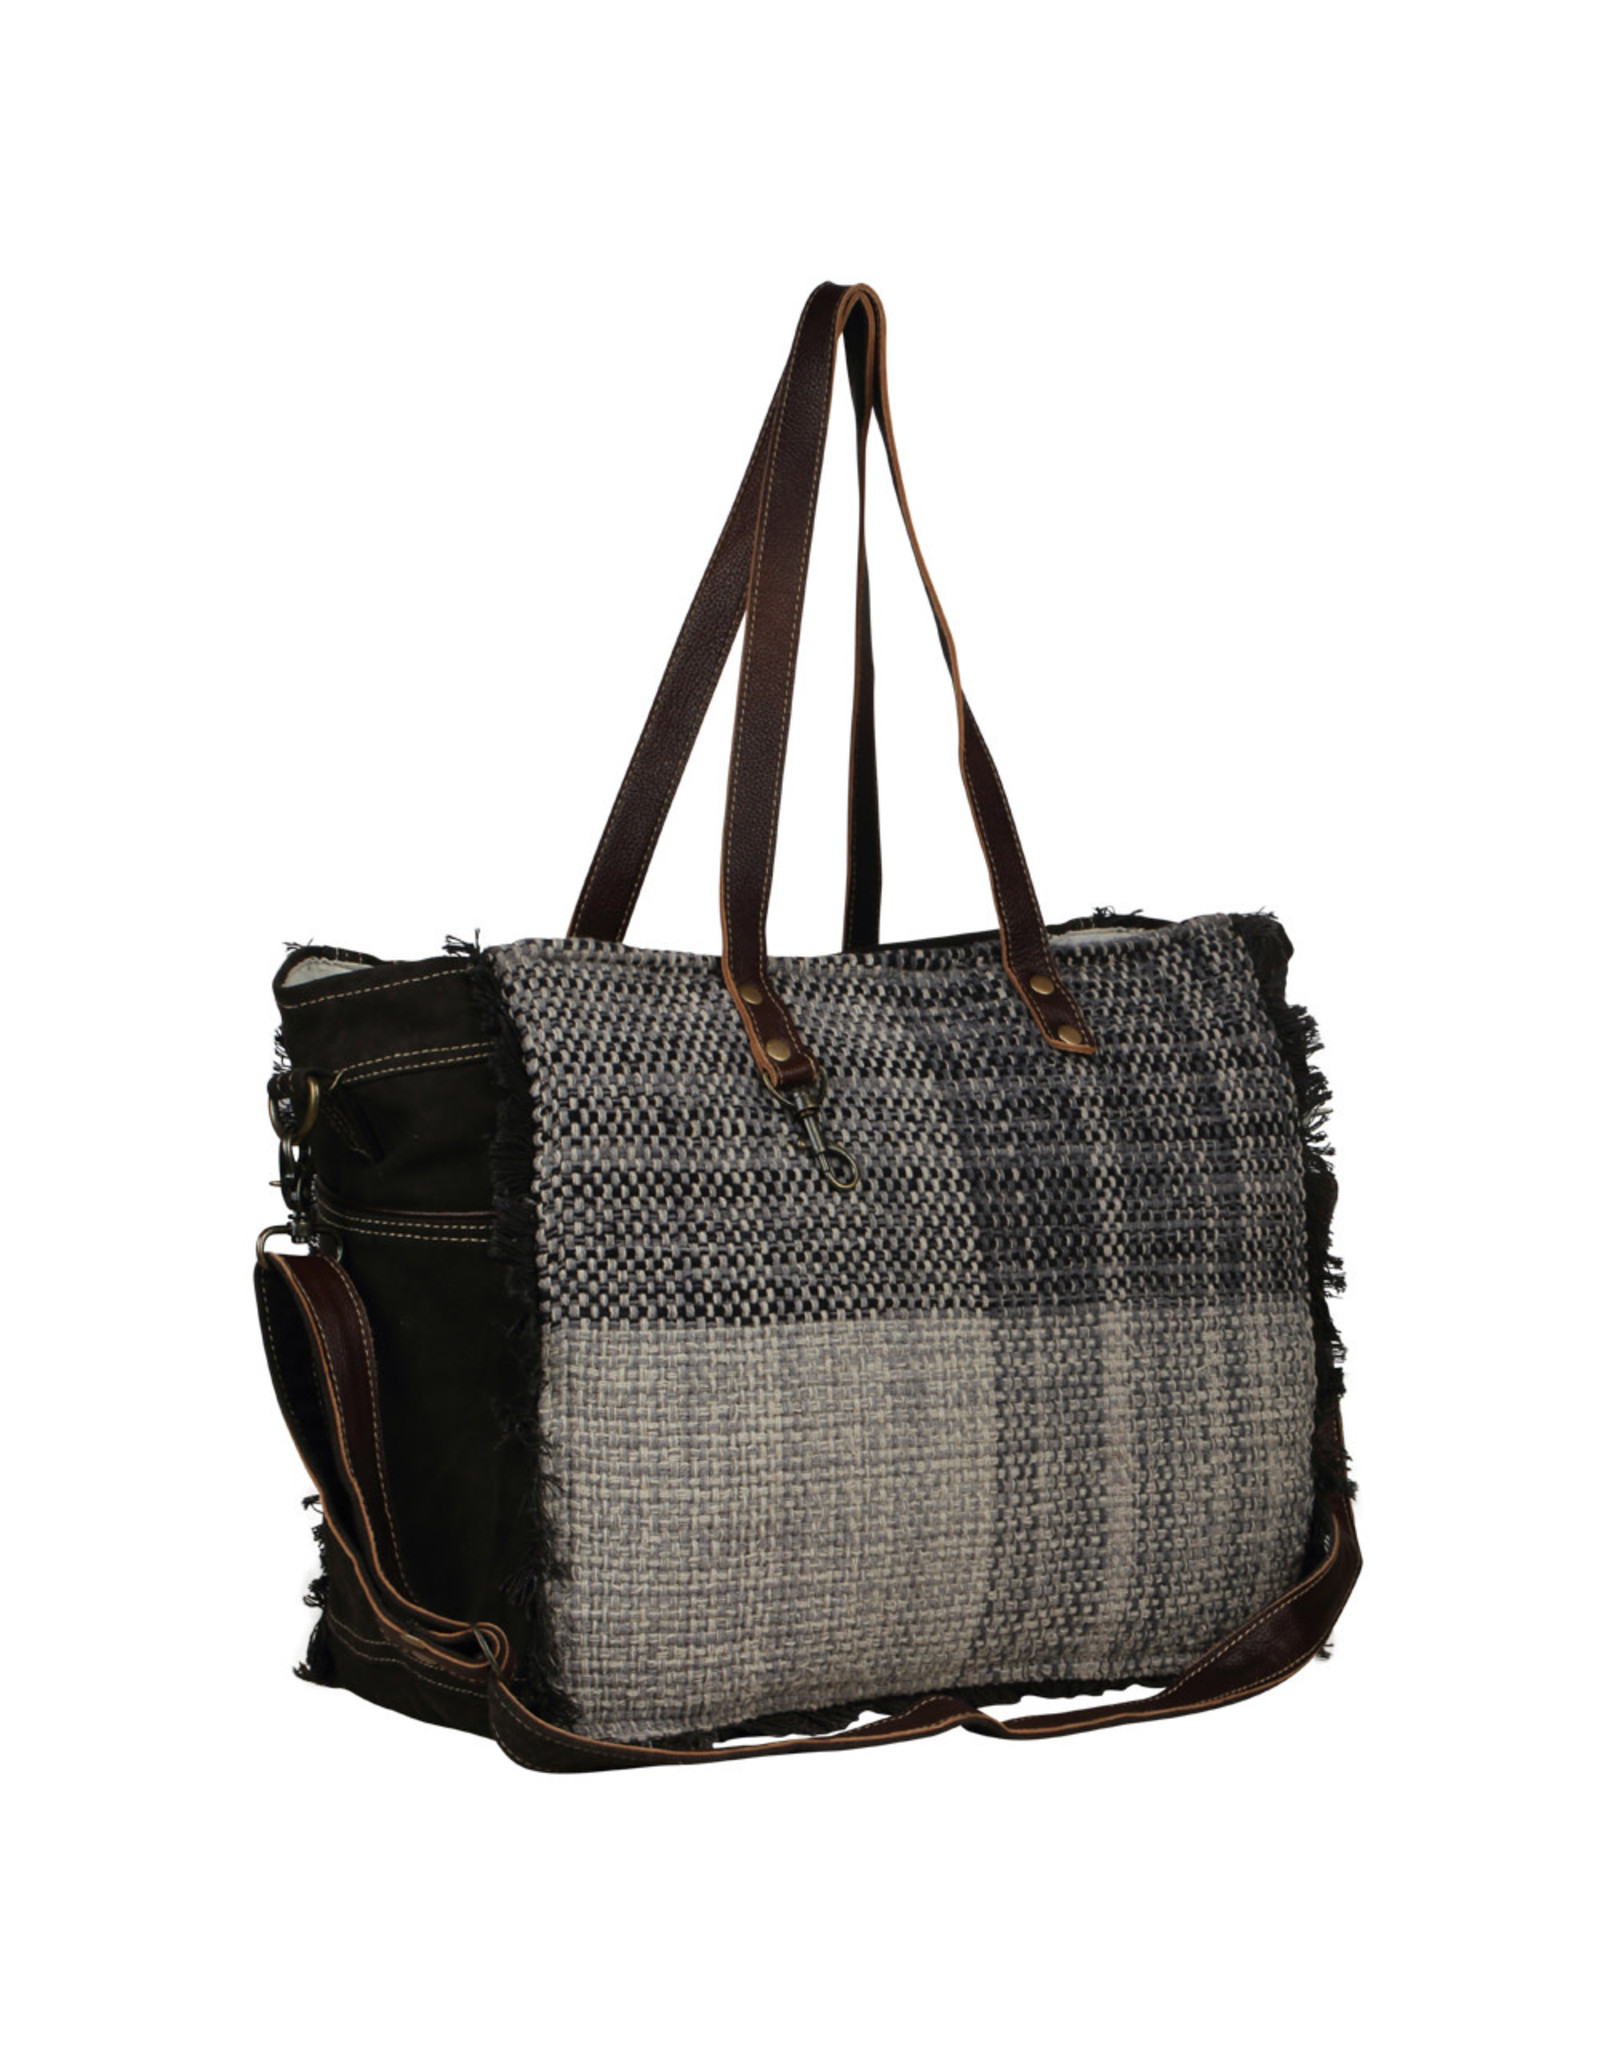 Myra Bags S-2090 Ought To Weekender Bag